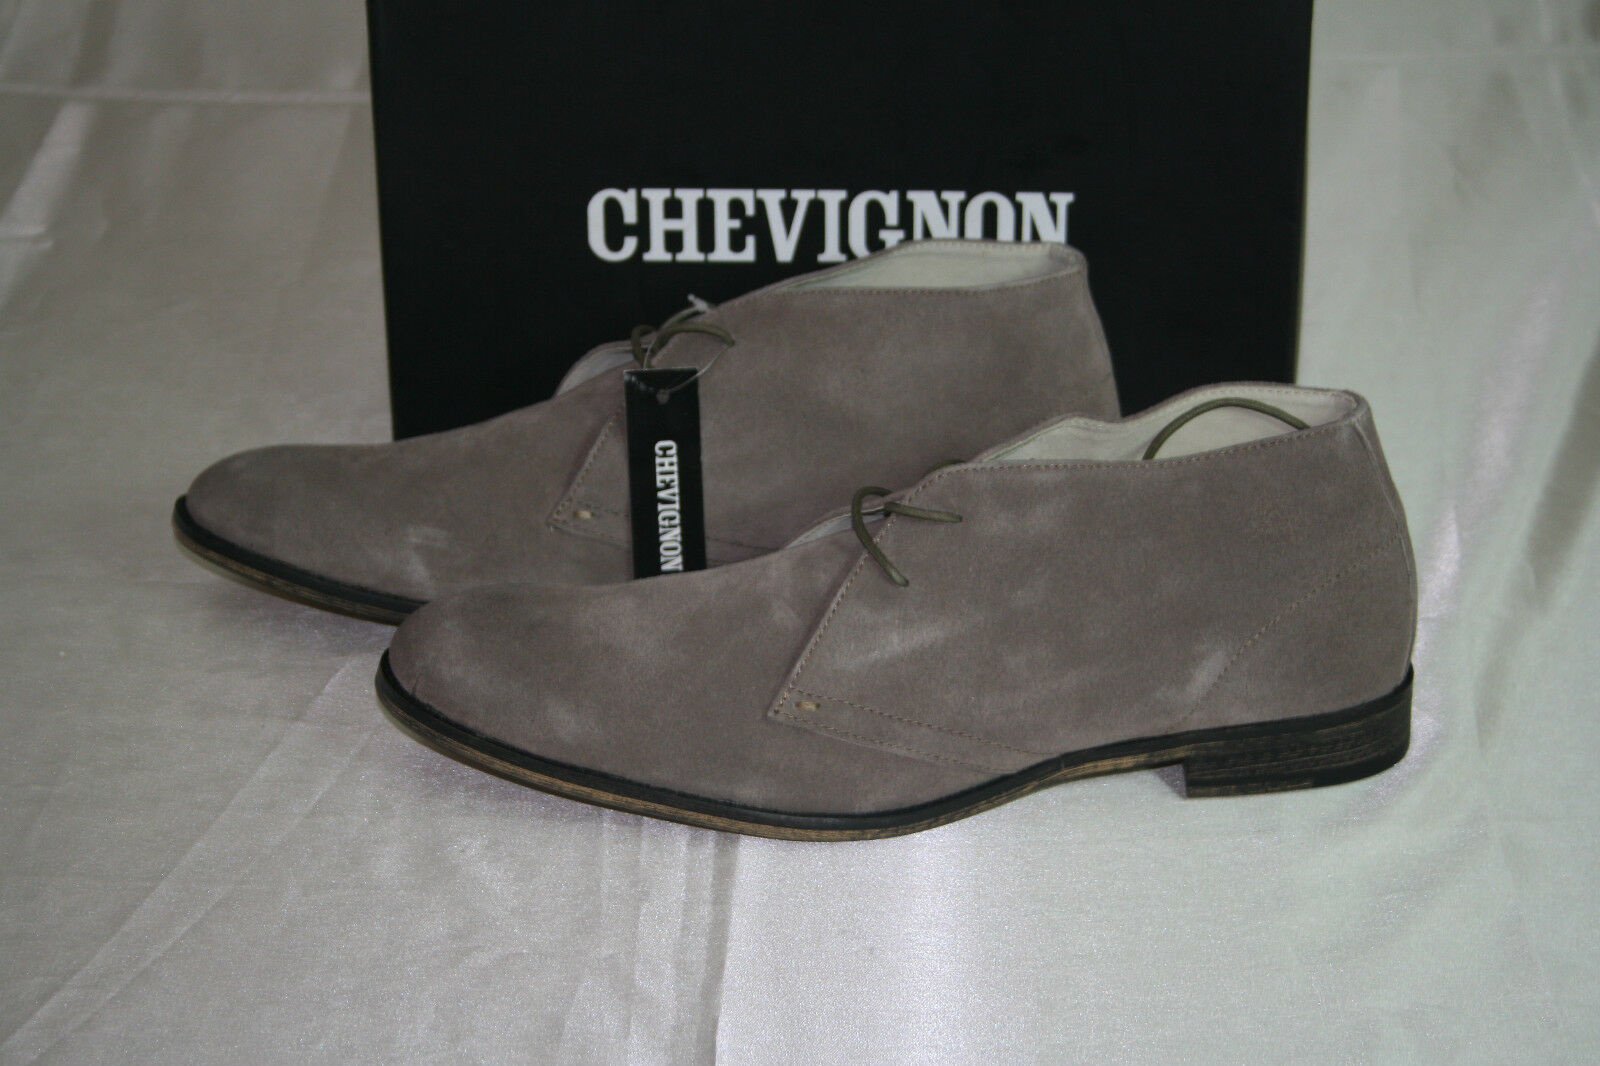 NEW CHEVIGNON Uomo TAUPE LEATHER LEATHER LEATHER SUEDE CASUAL LACES UP SHOES SIZE   12 EUR 46 fcf51e